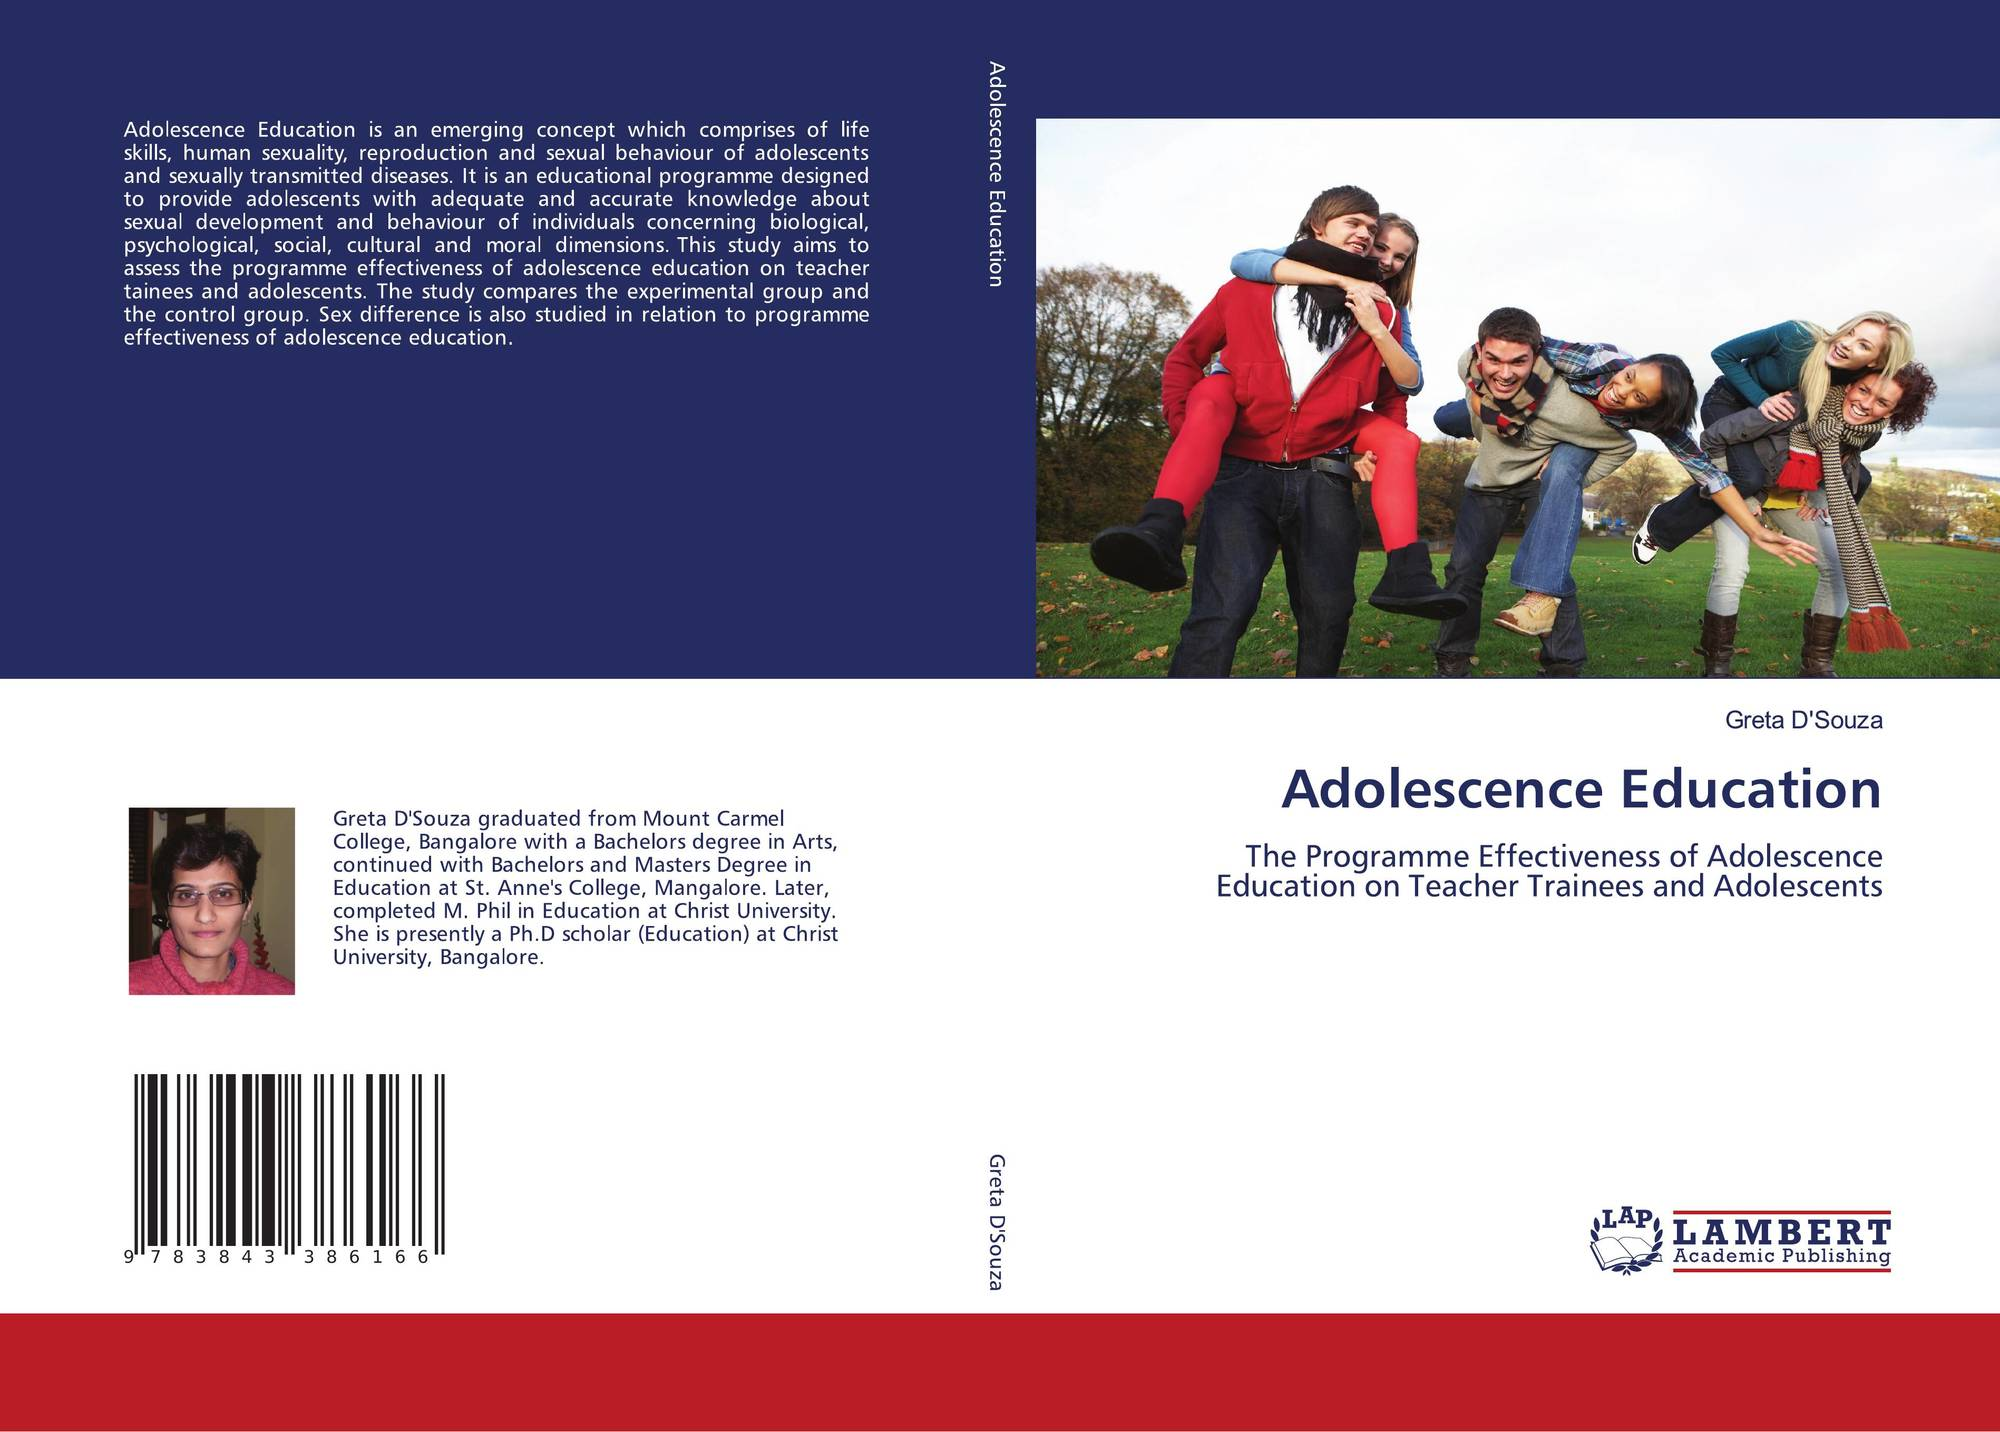 an analysis of adolescent development in educational contexts Abstract the basic process of adolescent development involves changing  and their contexts produce development in  is challenging educational,.